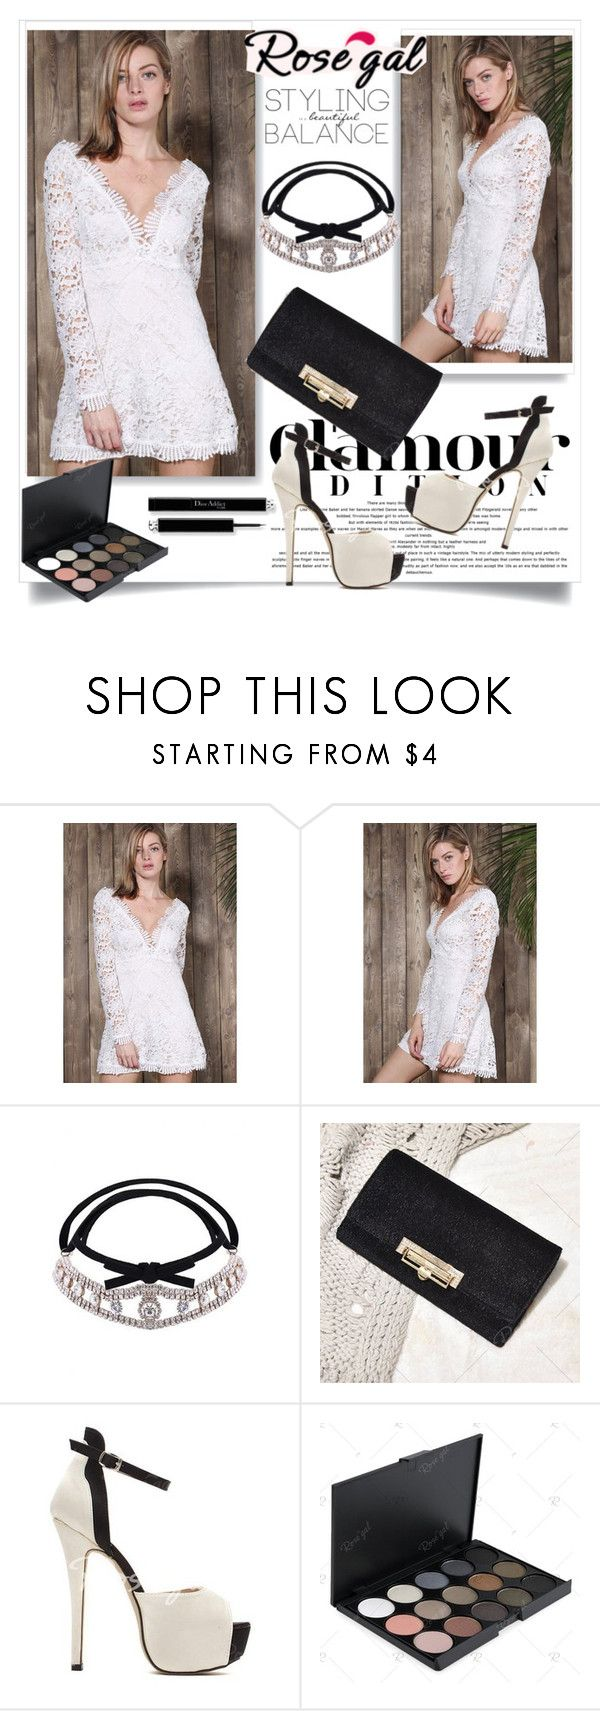 """""""Fashion"""" by fashionb-784 ❤ liked on Polyvore featuring fashionable and rosegal"""